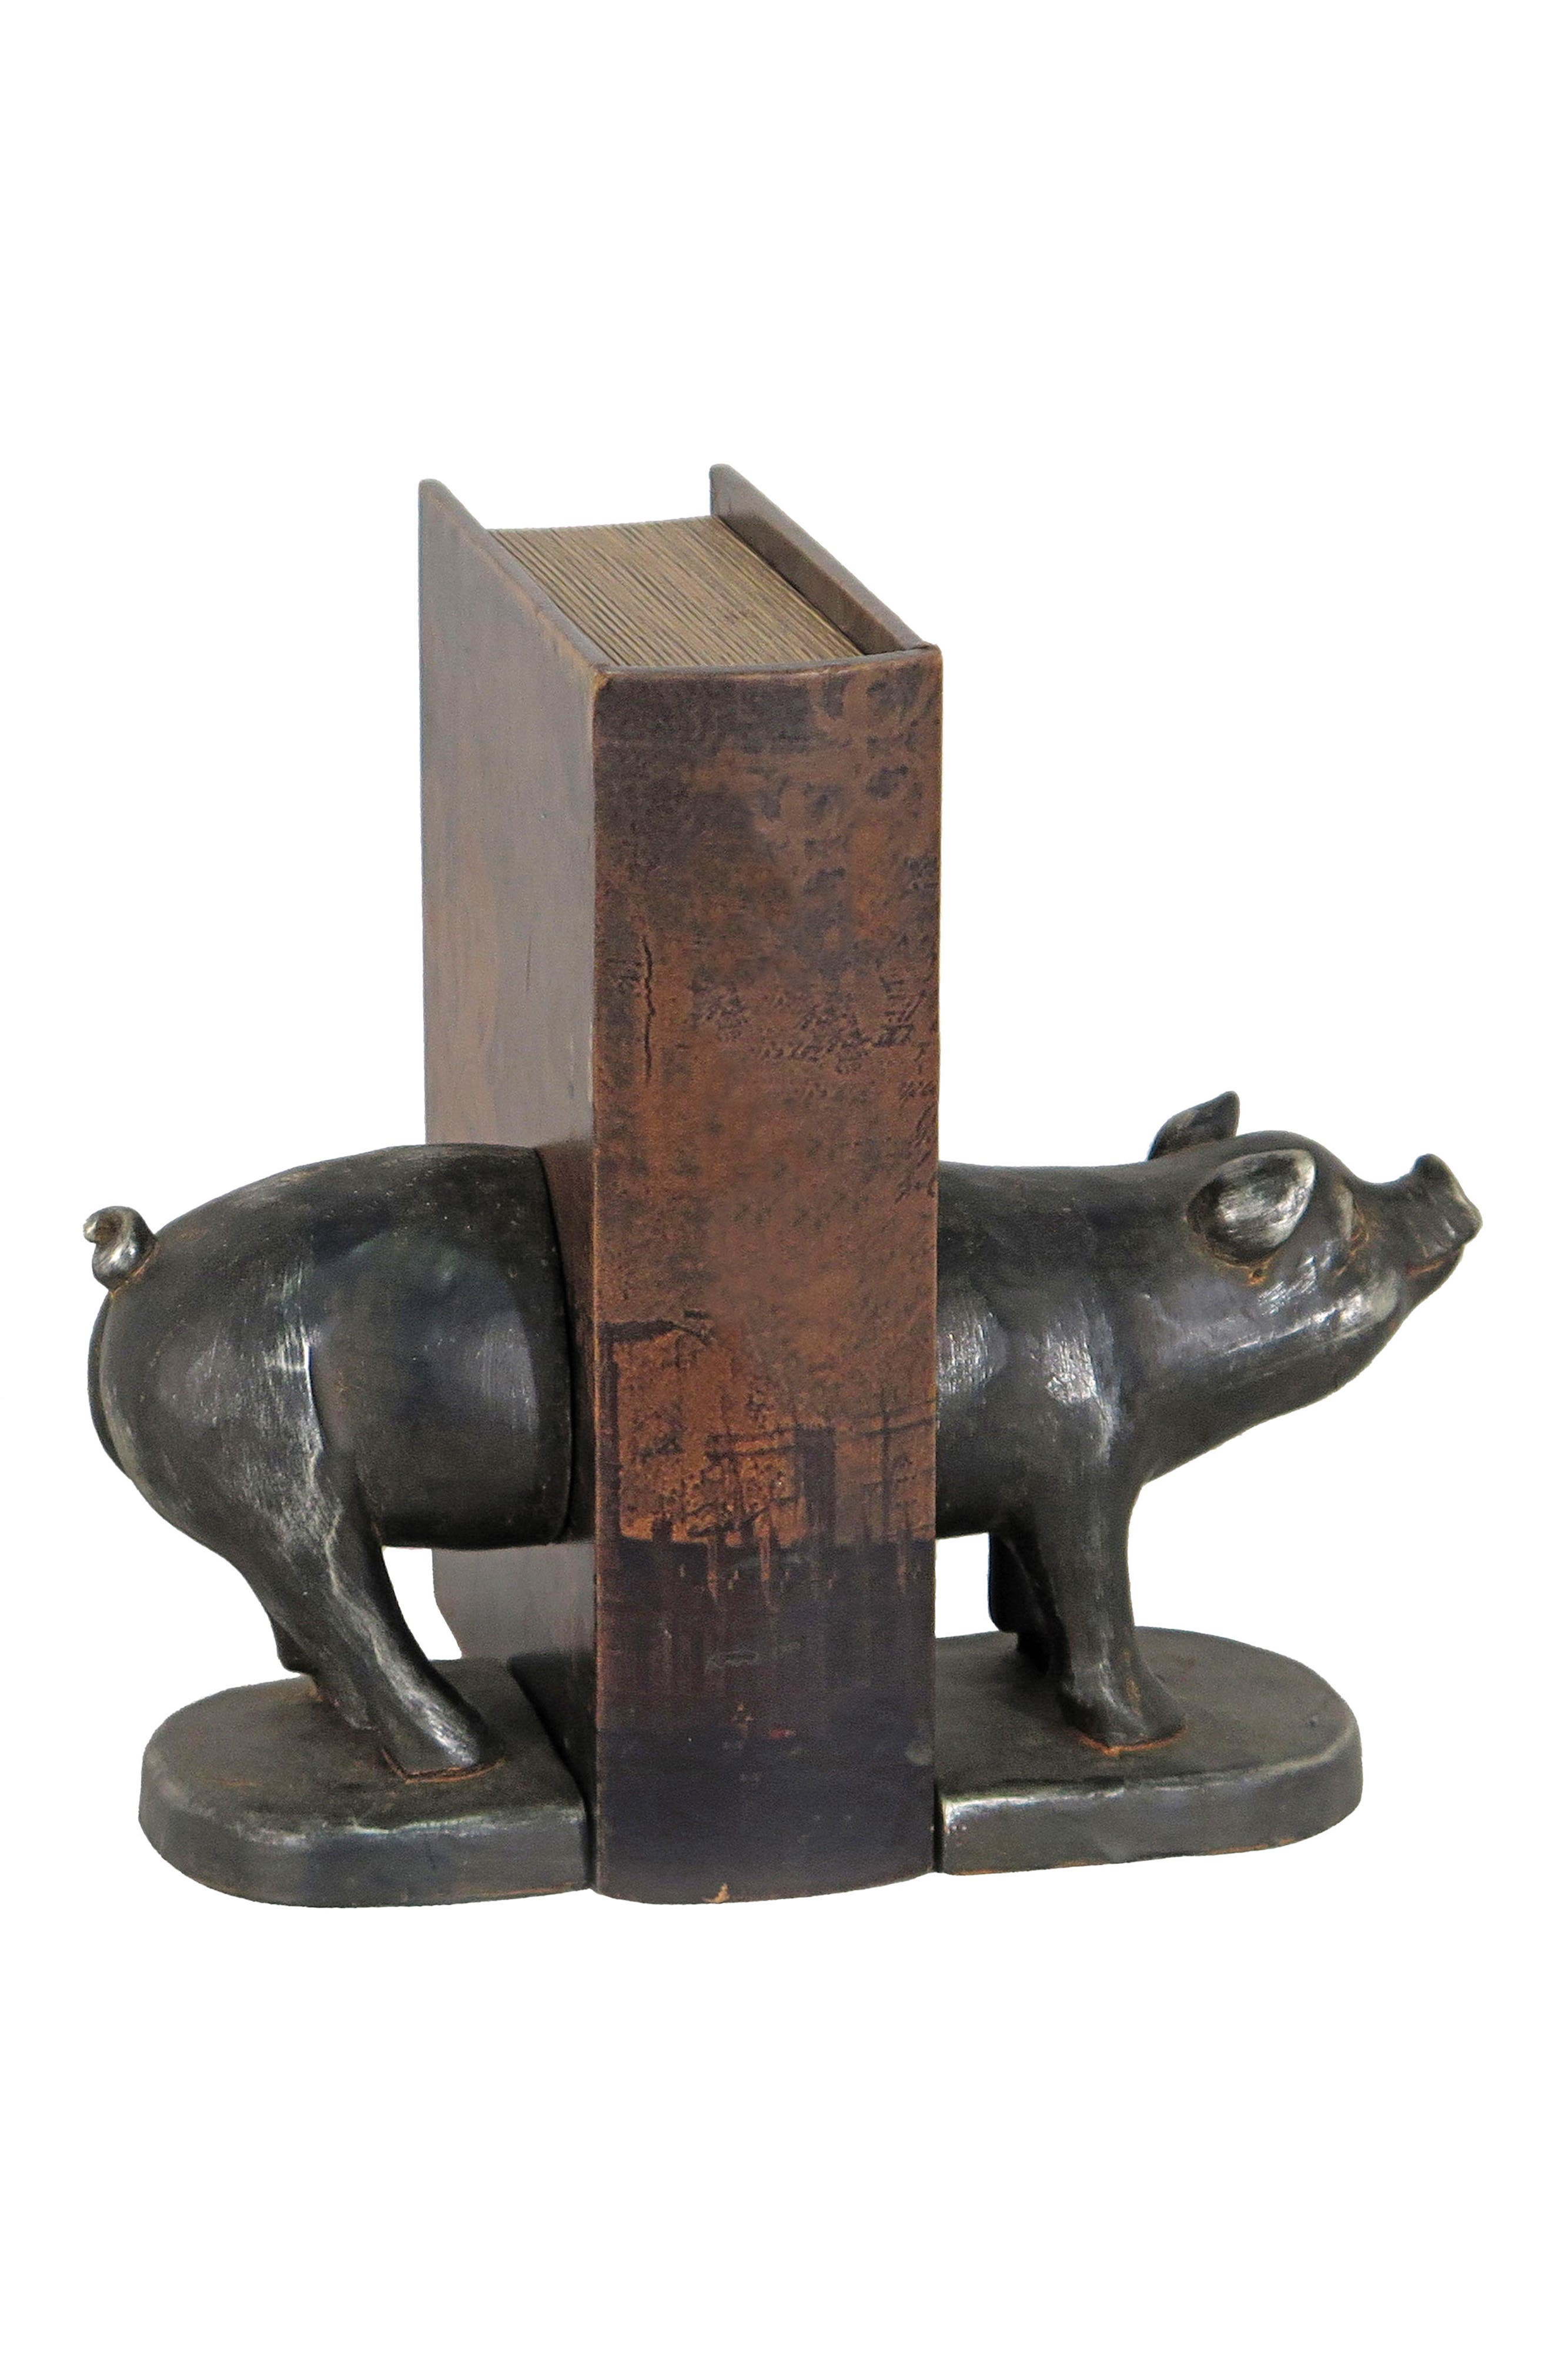 Main Image - Foreside Piglet Set of 2 Bookends